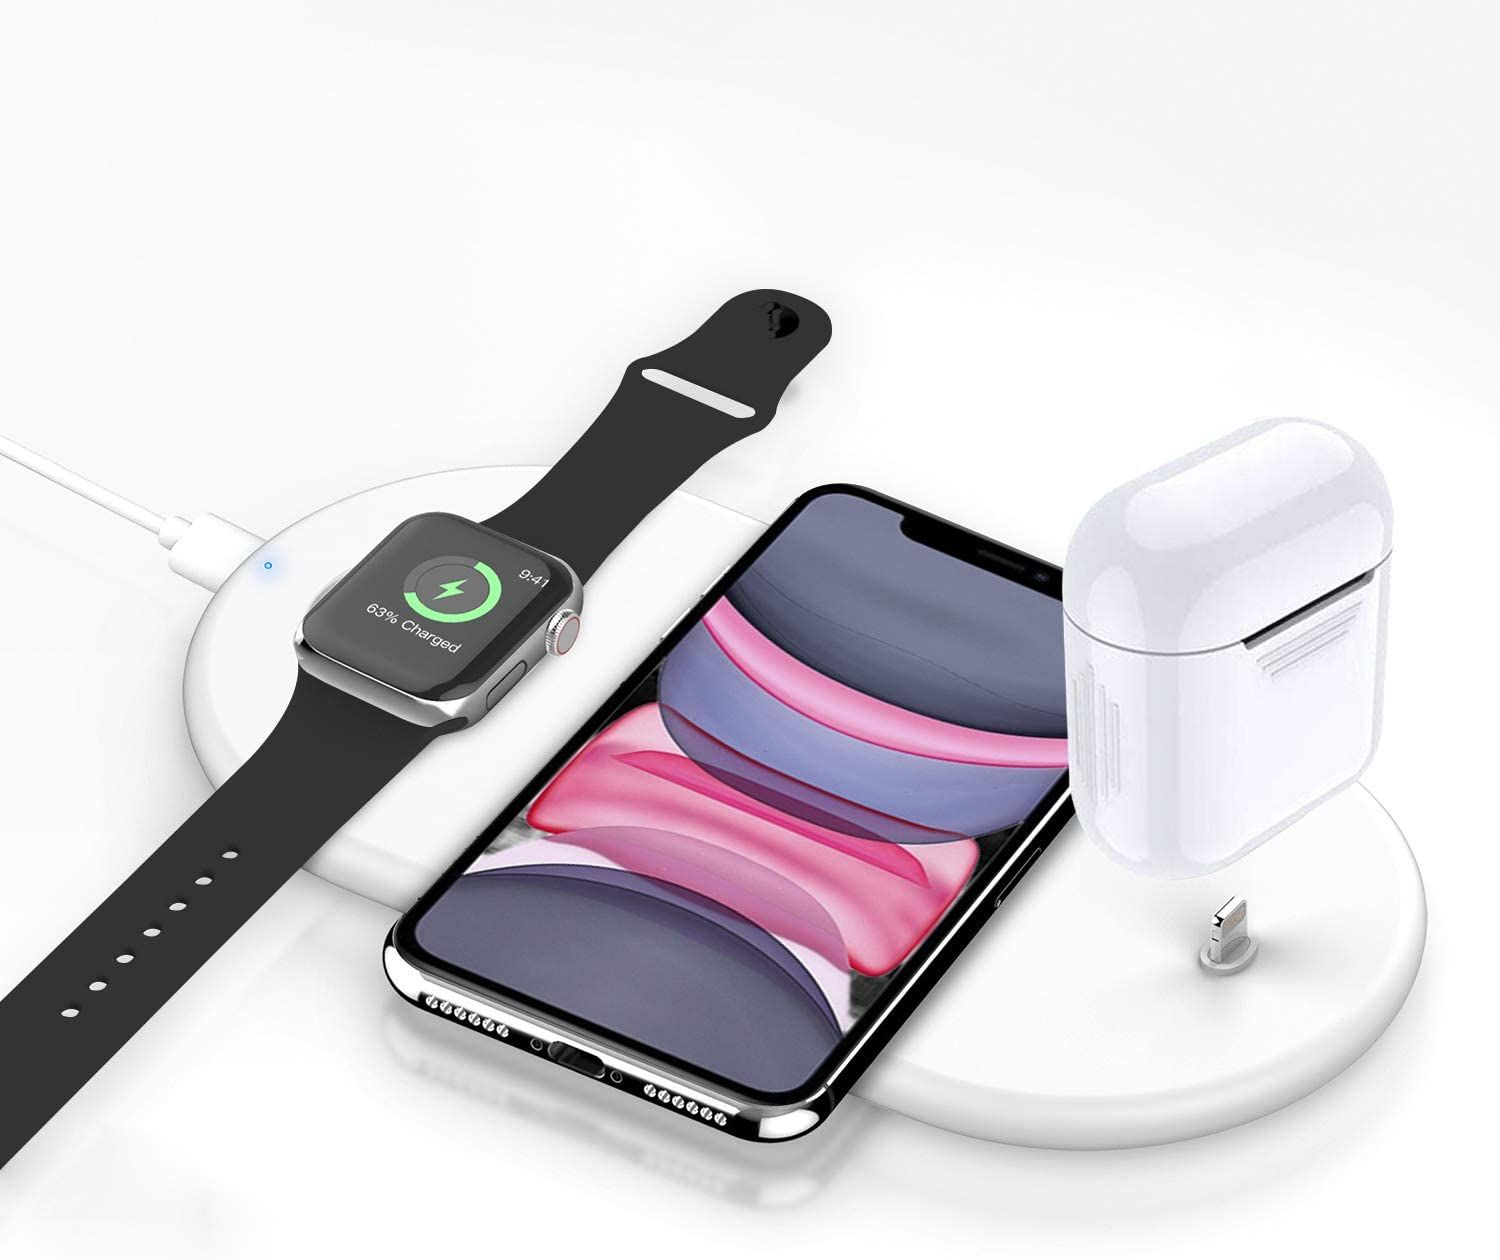 Meilleur Chargeur Iphone Airpods Apple Watch Sans Fil En 2020 Iphone Chargeur Iphone Support Portable